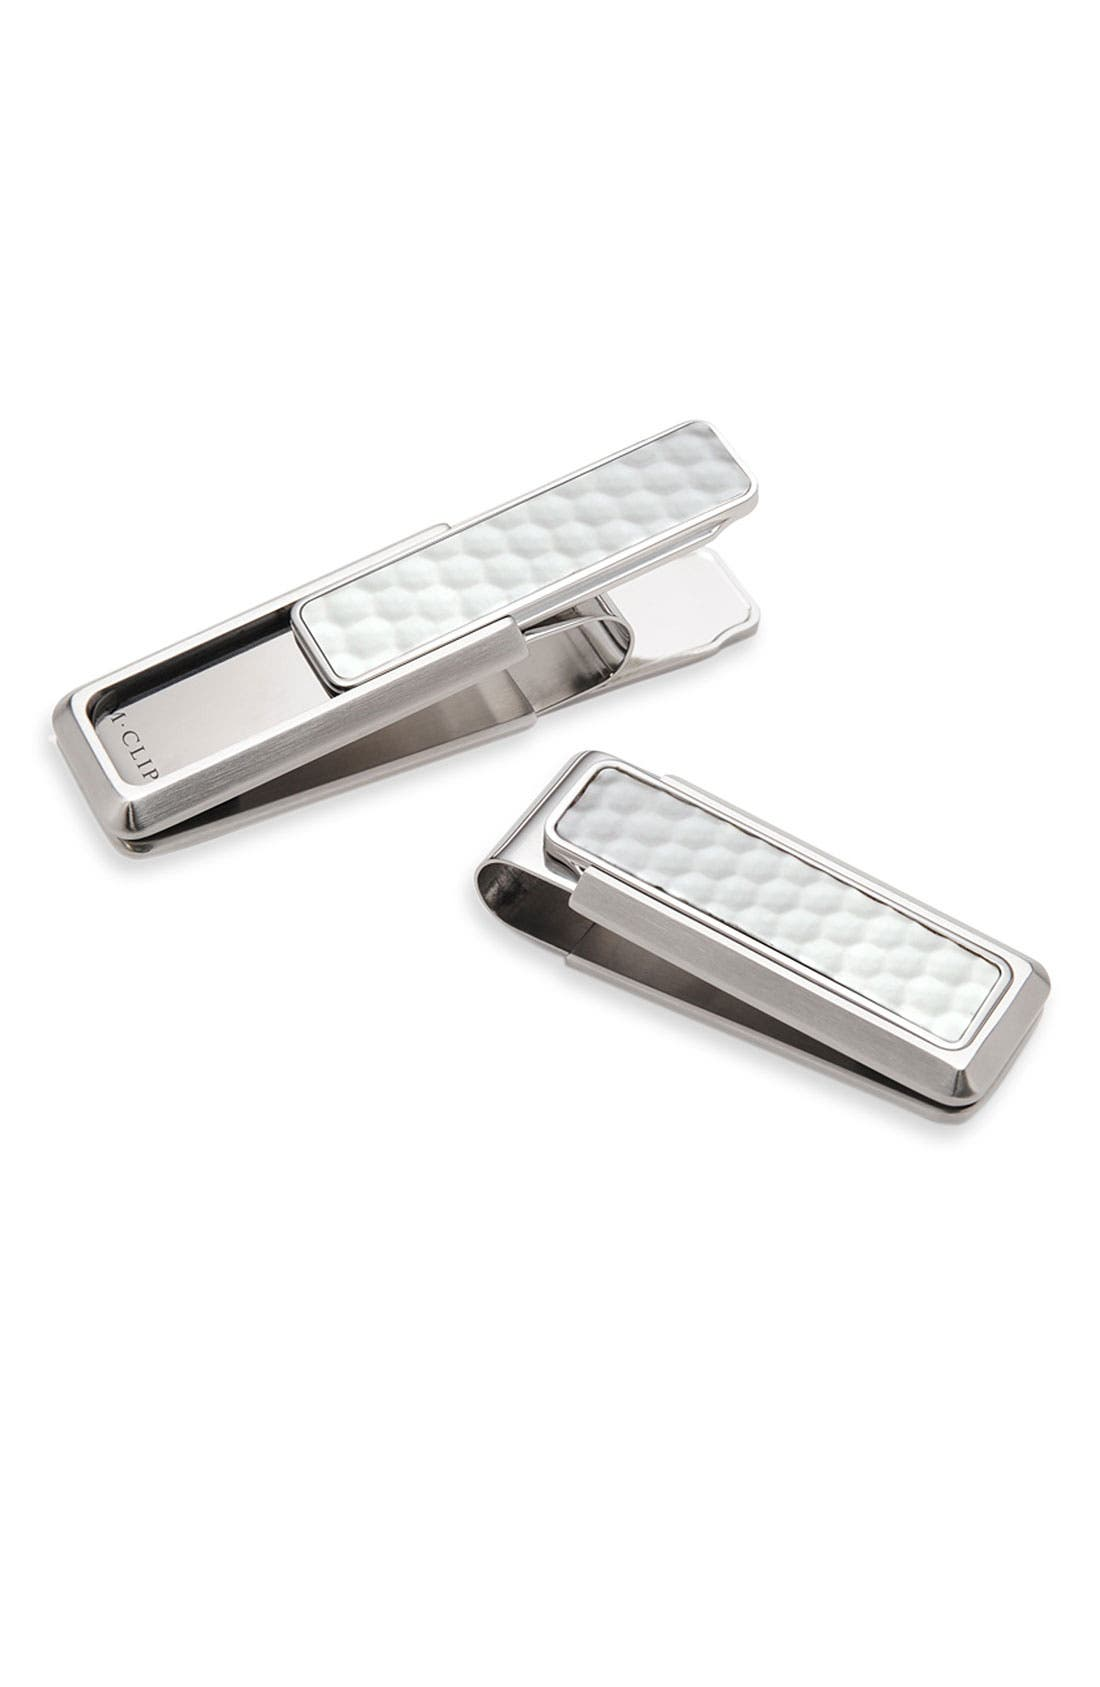 M-Clip® 'Golf Ball' Stainless Steel Money Clip